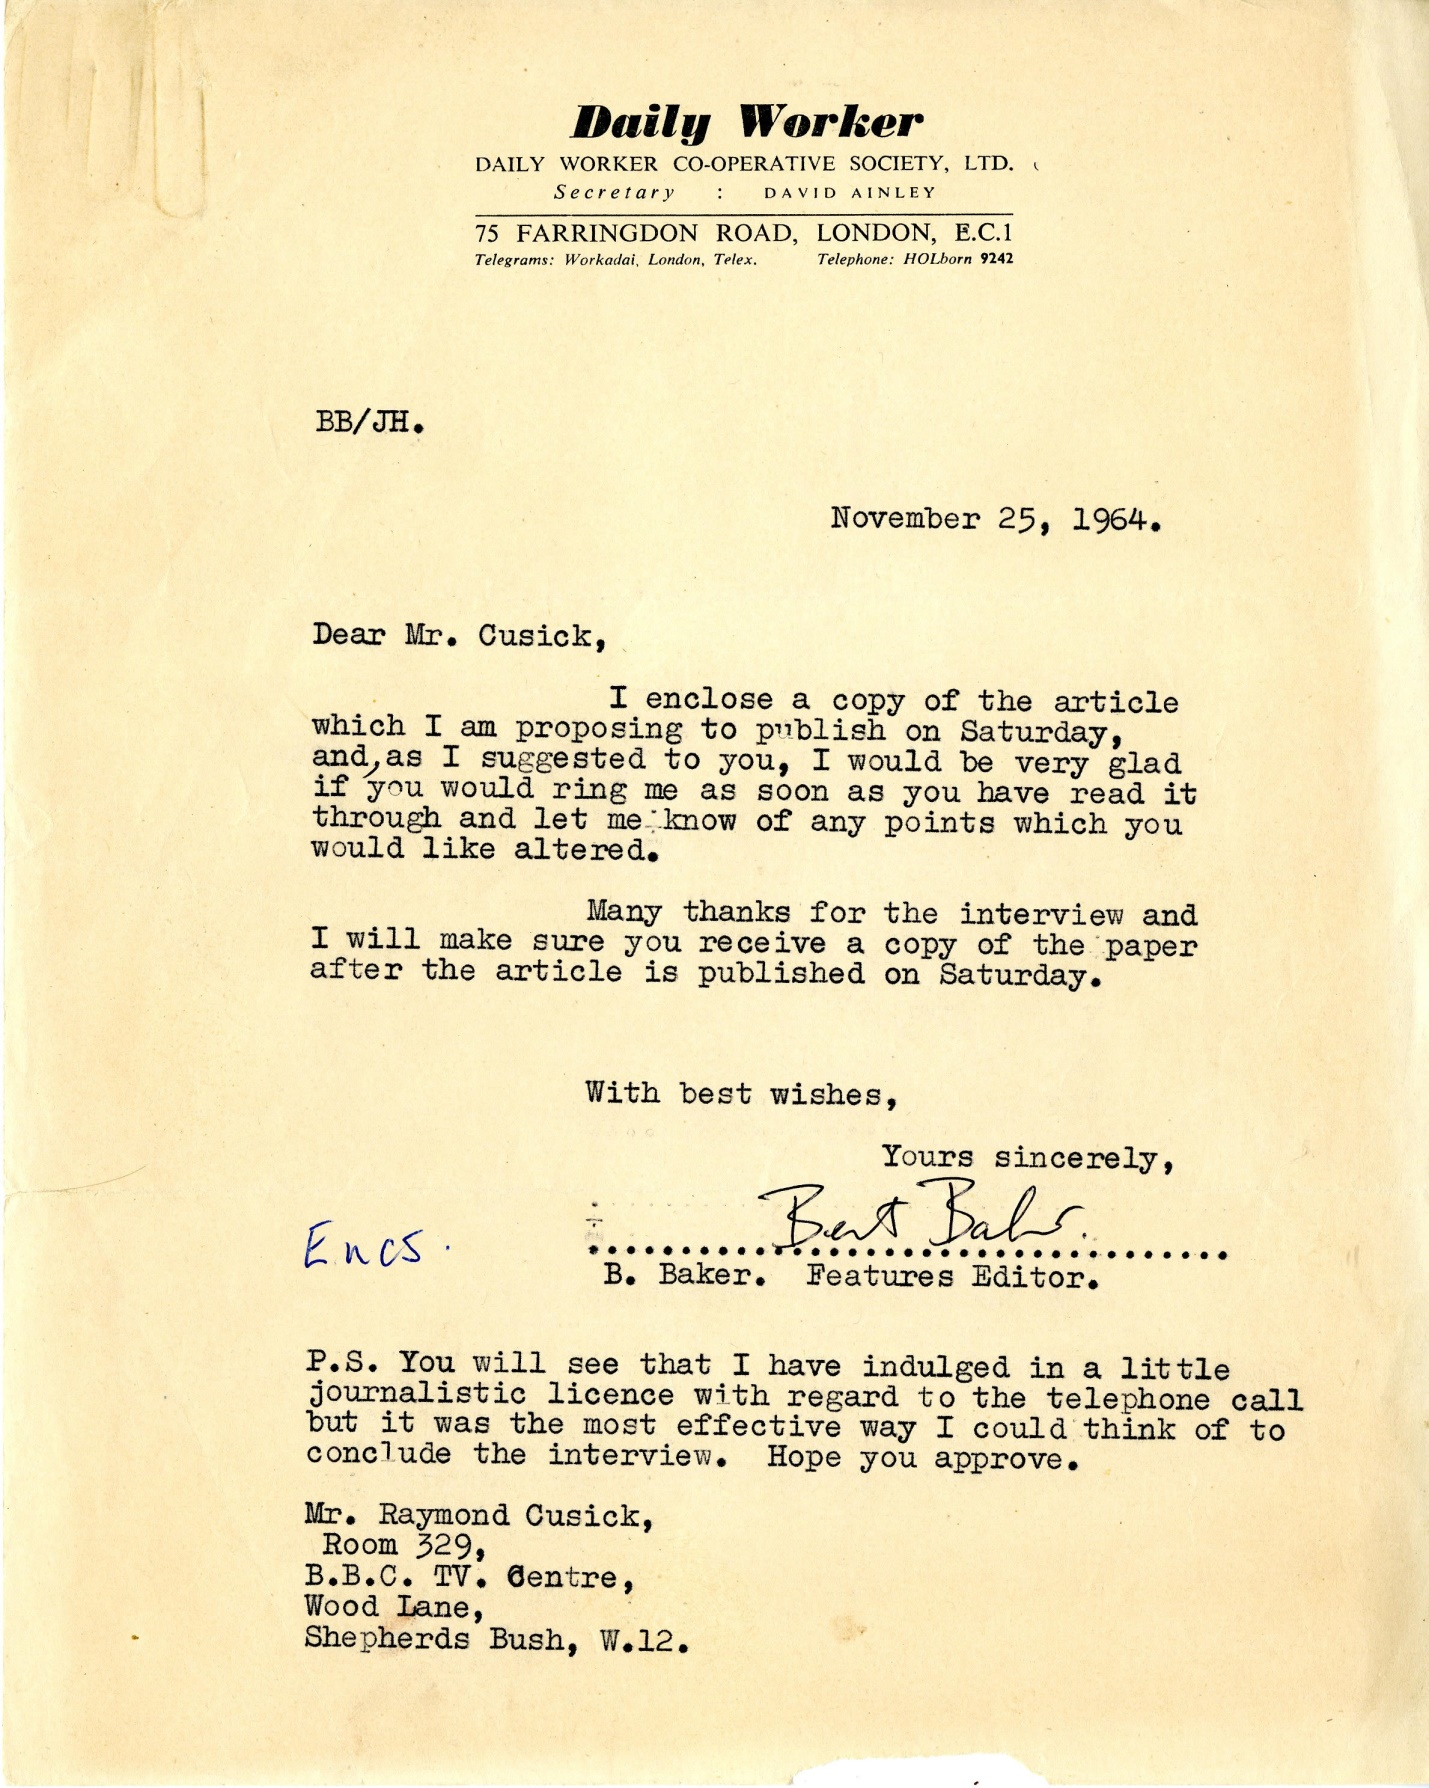 Letter dated 25 November 1964 to Raymond Cusick regarding article to appear in Daily Worker